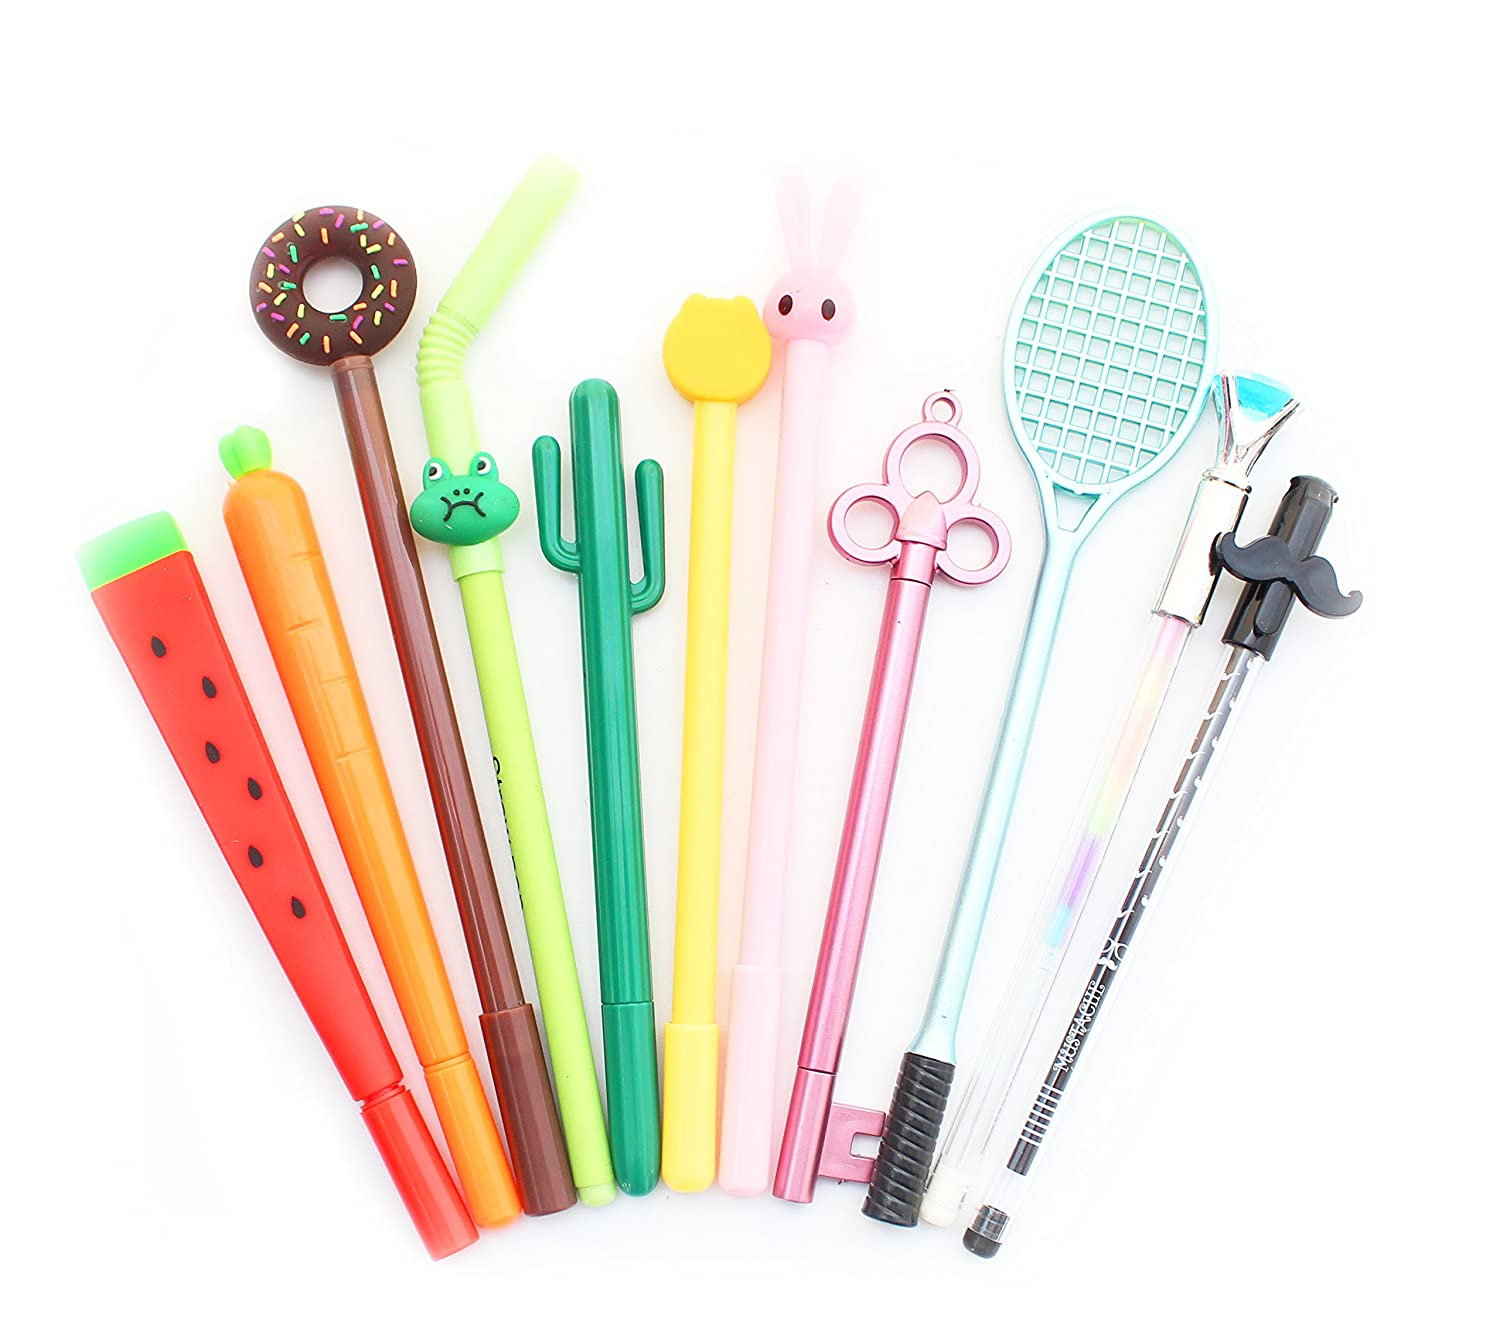 SKKSTATIONERY 12 PCS Gel Ink Pen Set, Cute Cartoon Favor, Different Styles Assorted